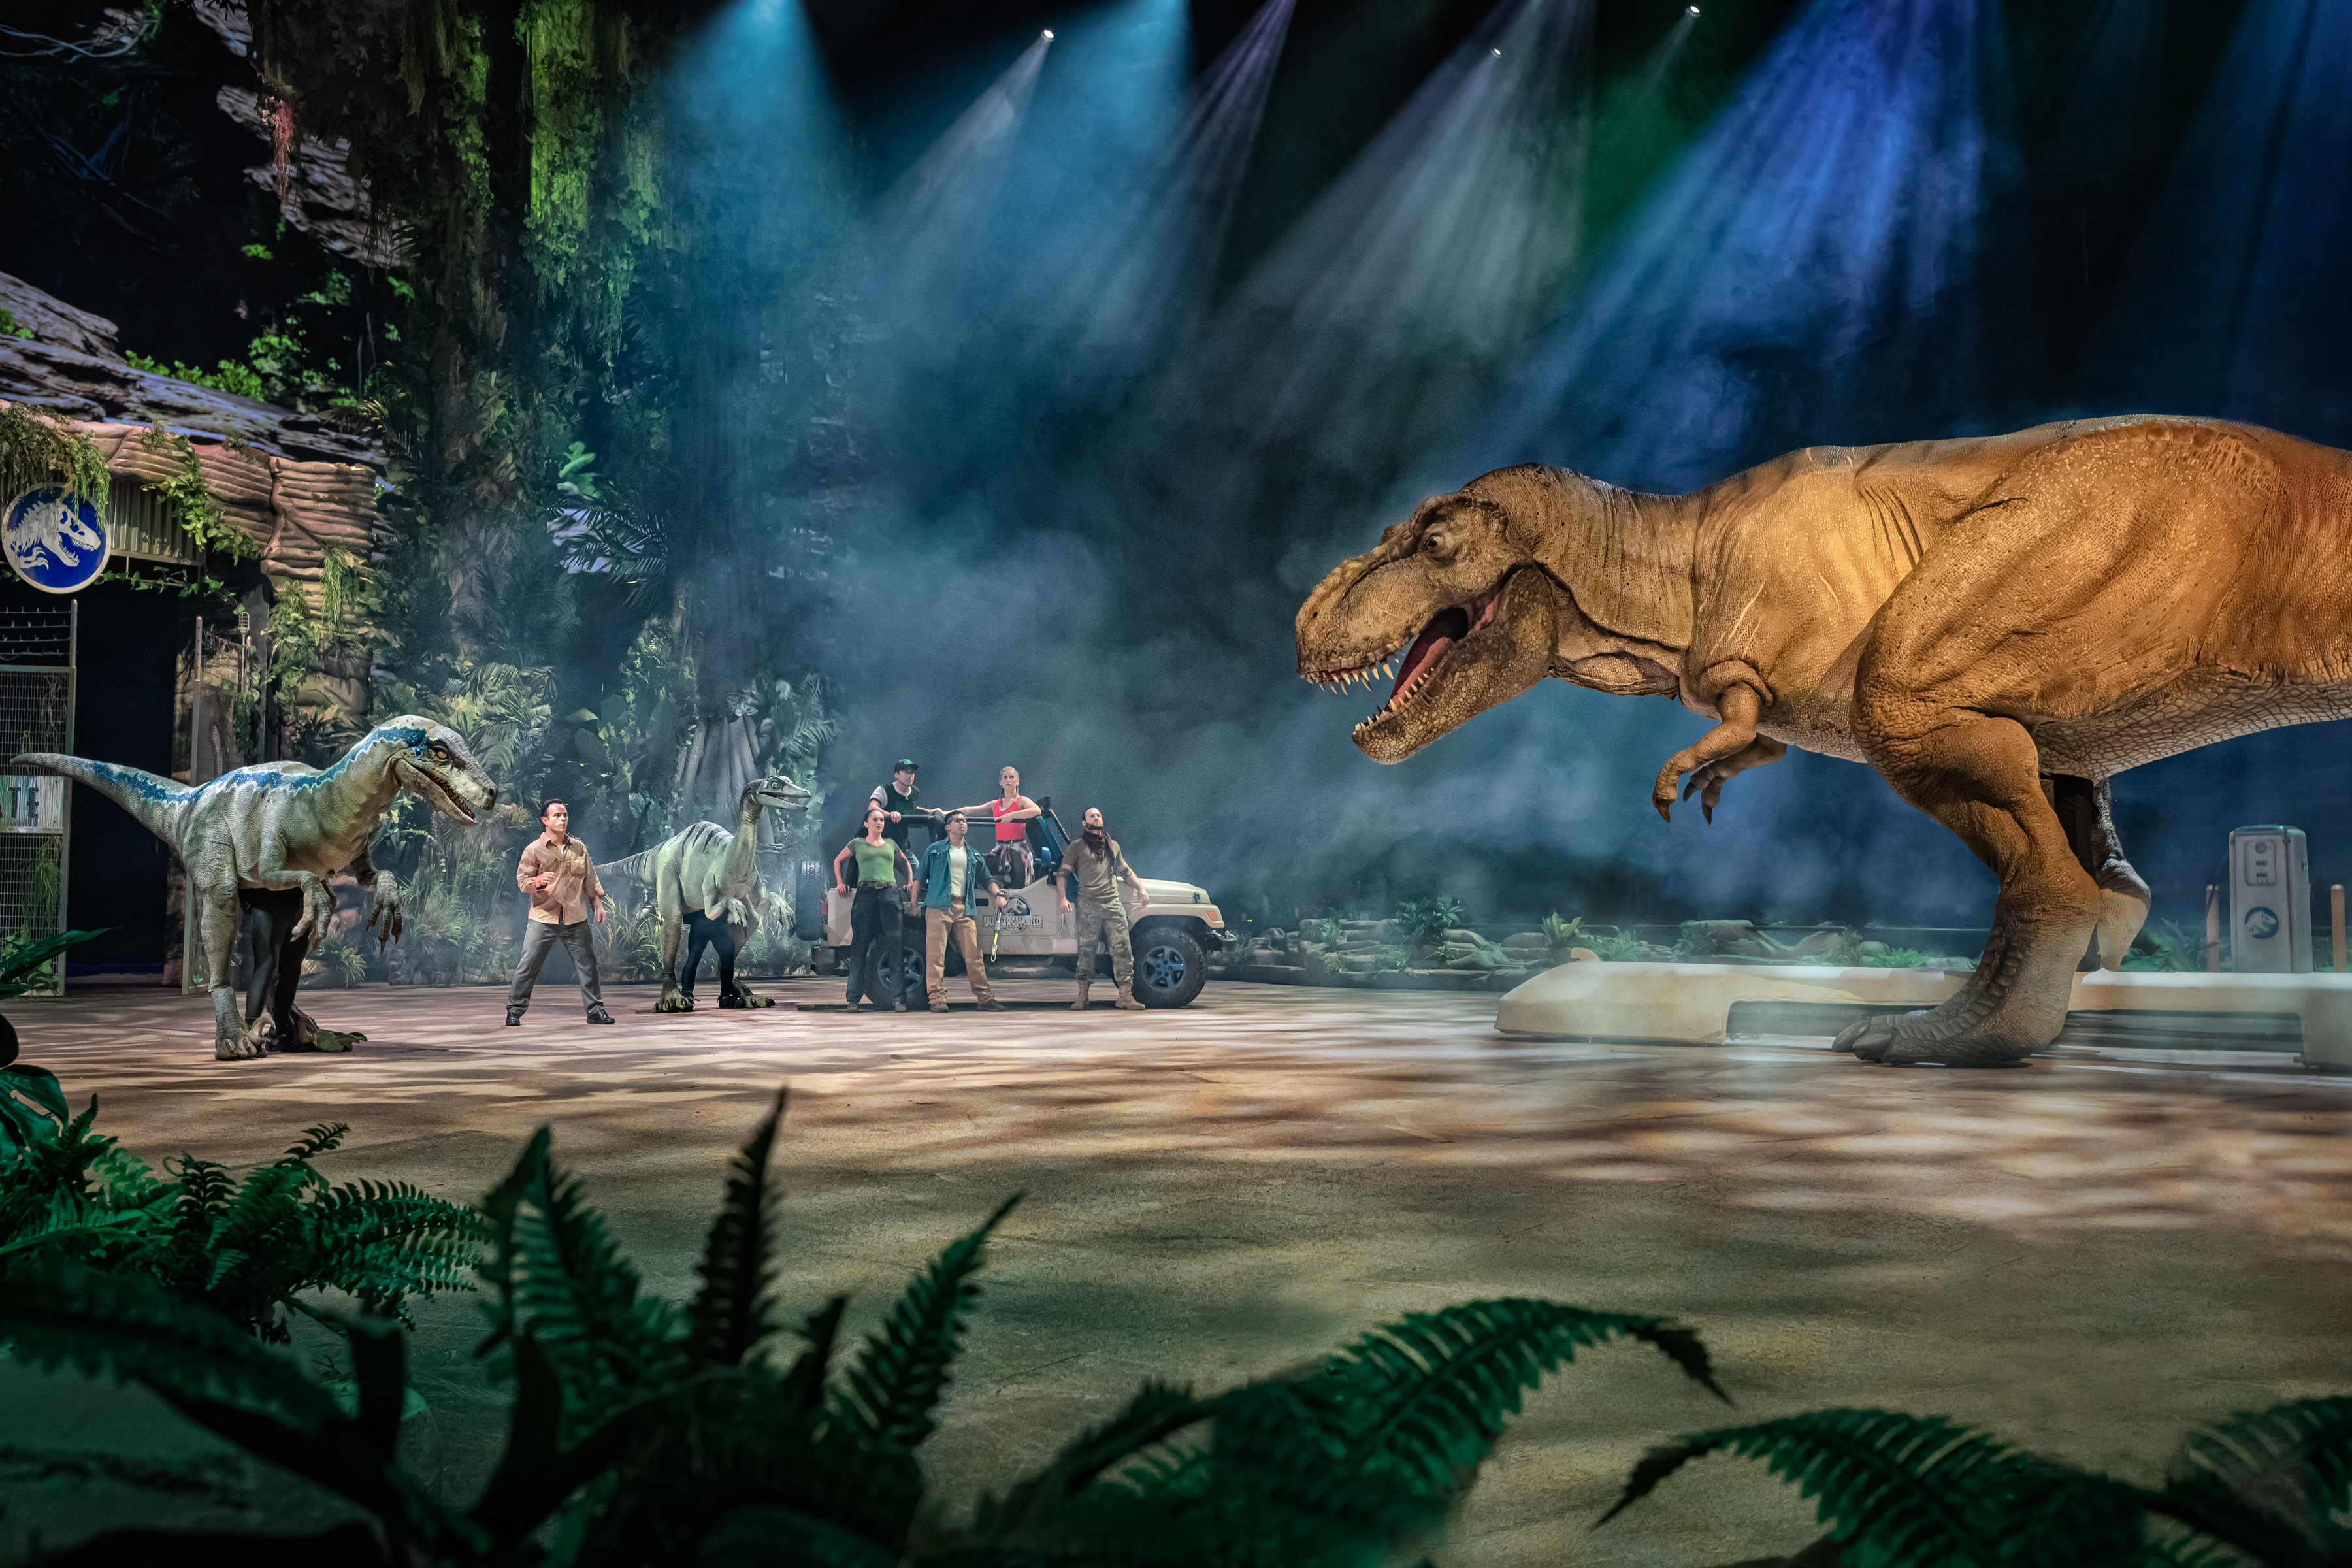 The world premiere of the Jurassic World Live Tour kicks off this weekend at the Allstate Arena in Rosemont.